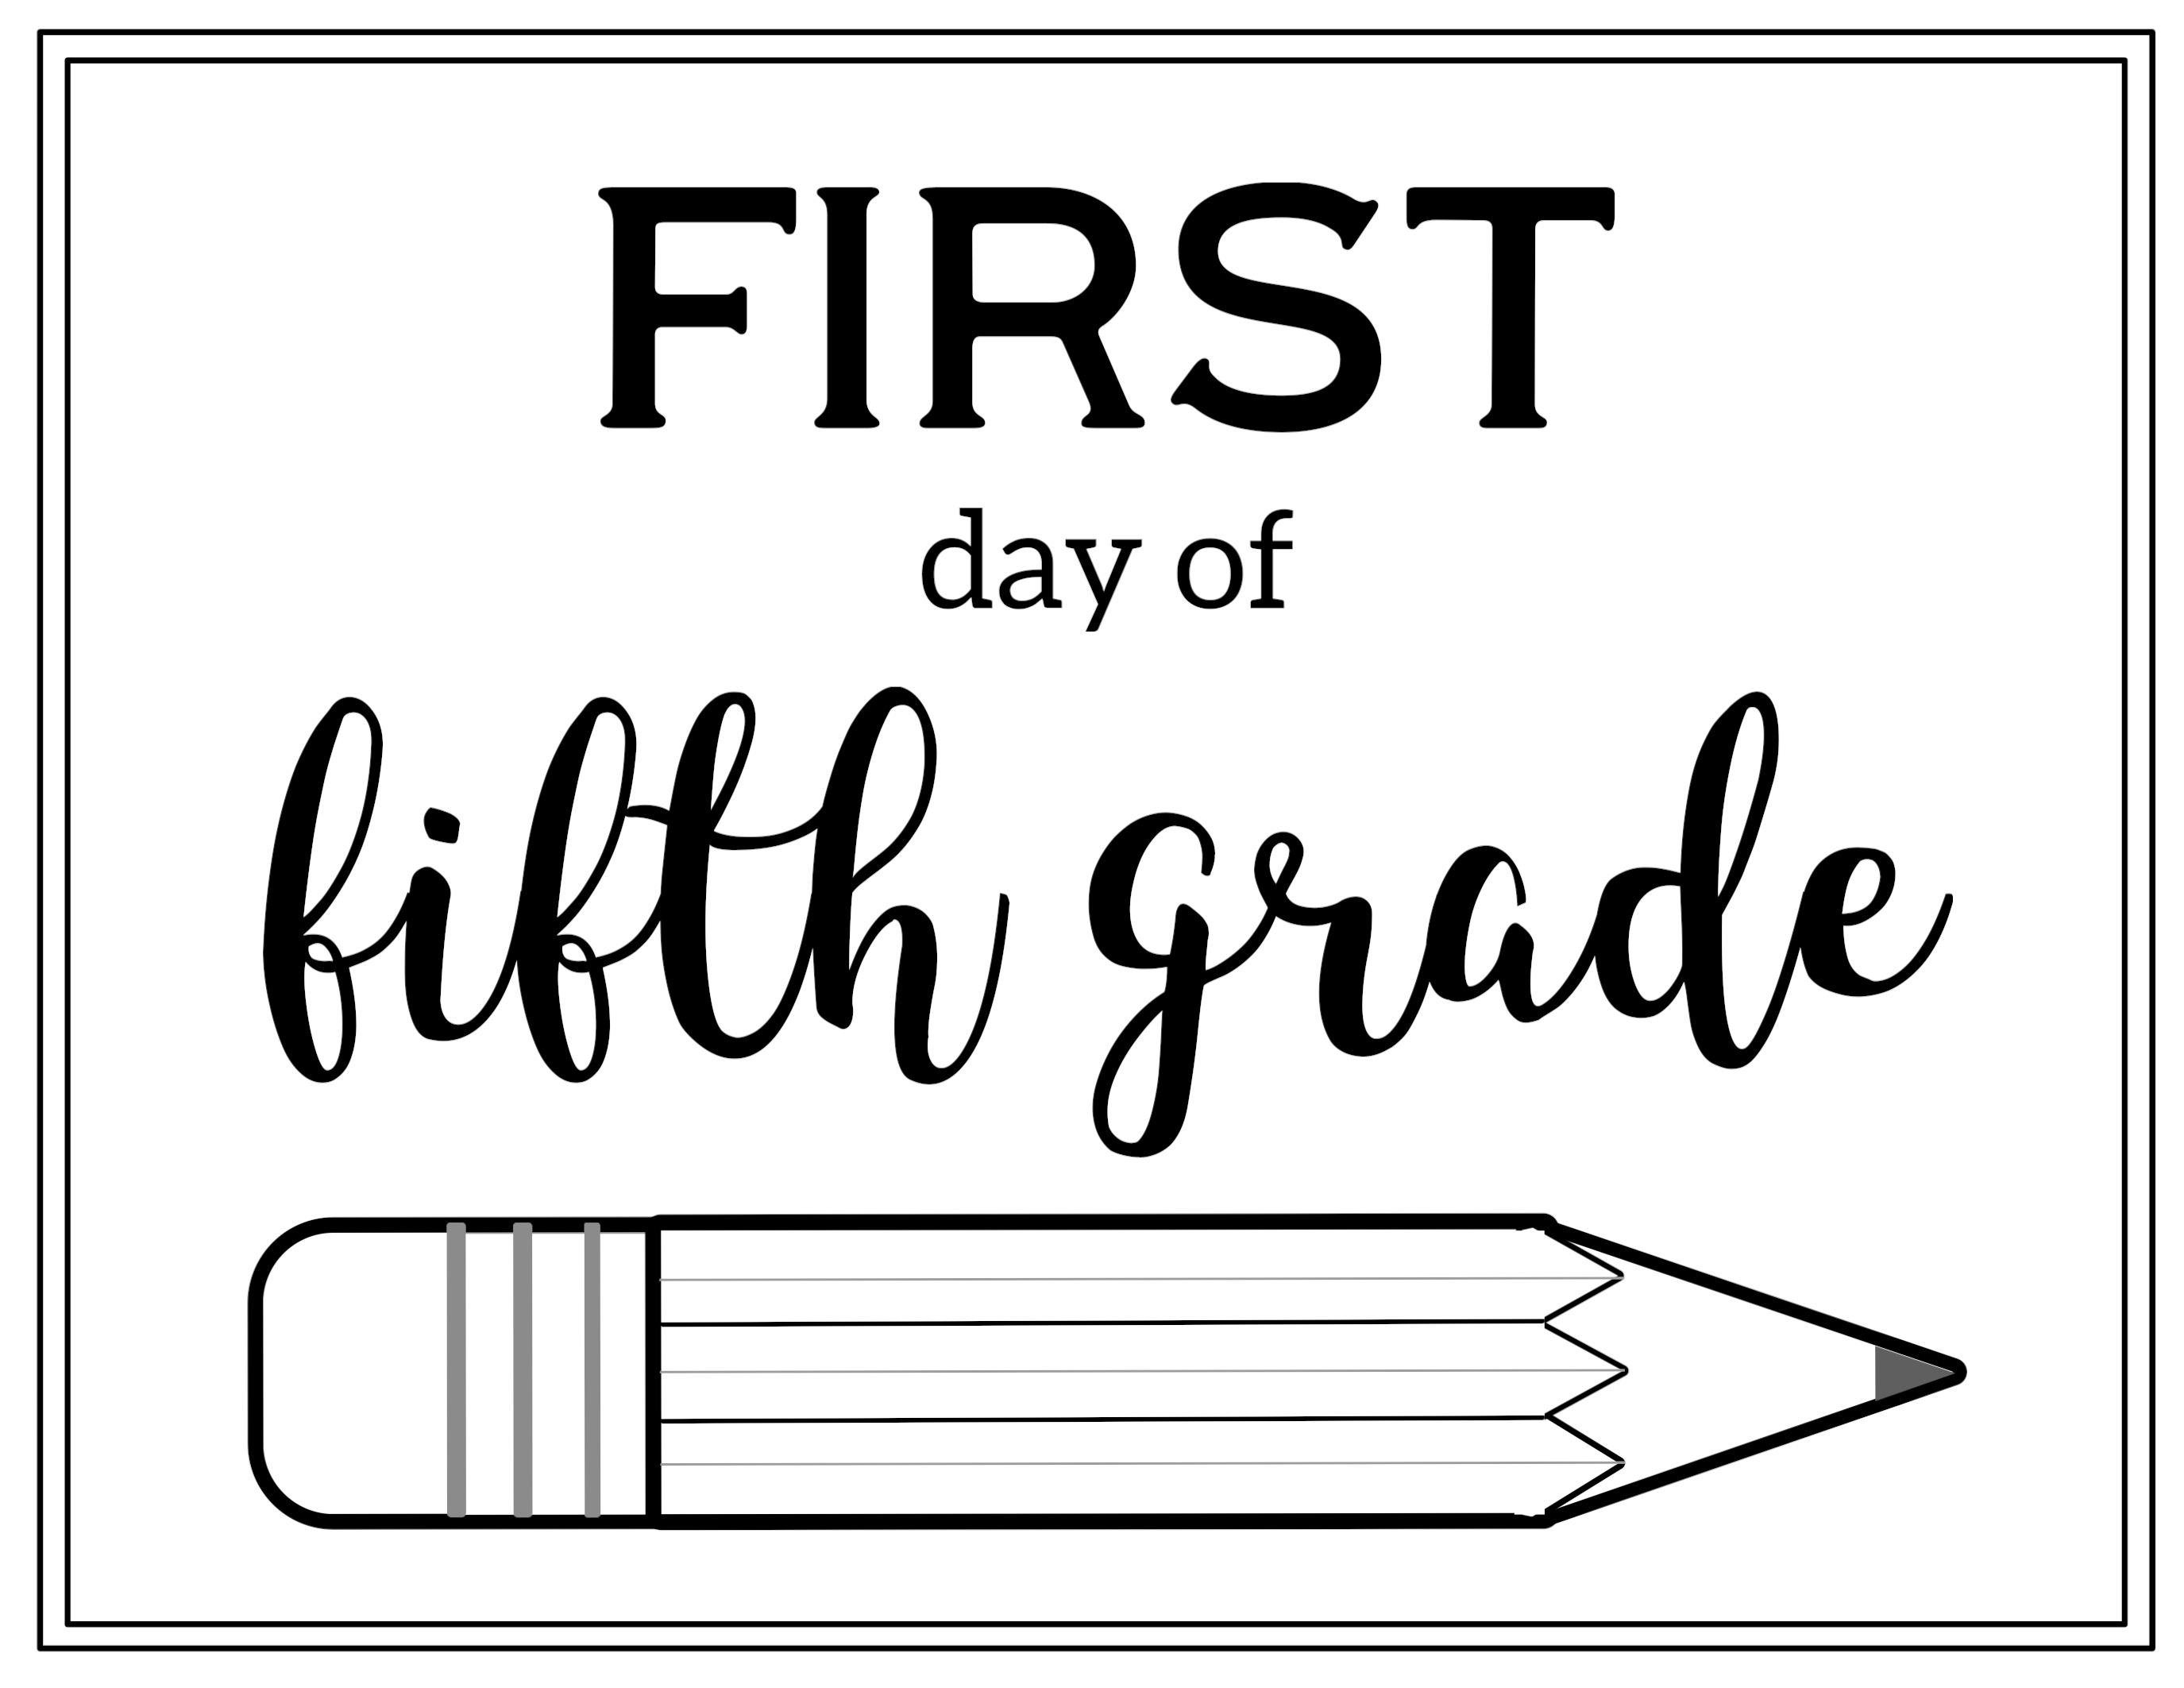 Free Printable First Day of School Sign {Pencil} - Paper ...